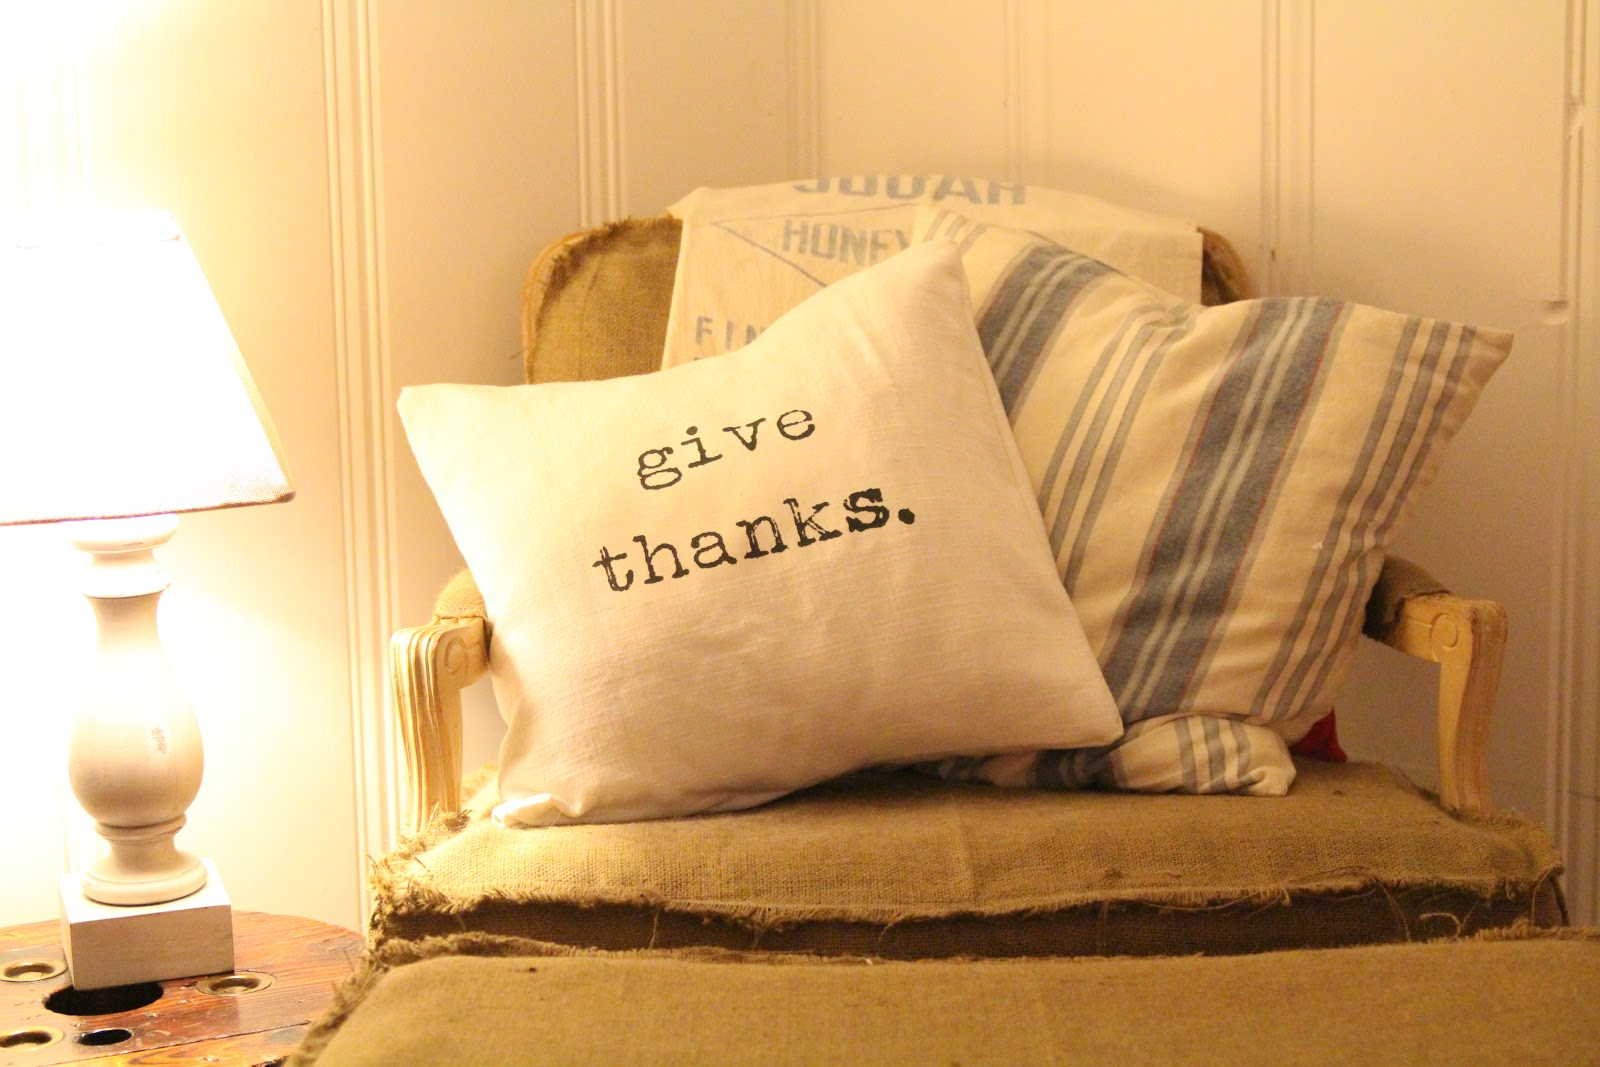 decorations thanksgiving incorporating diy ruff printable news monmell decor with designs parties graphics pillow custom pillows anders into home